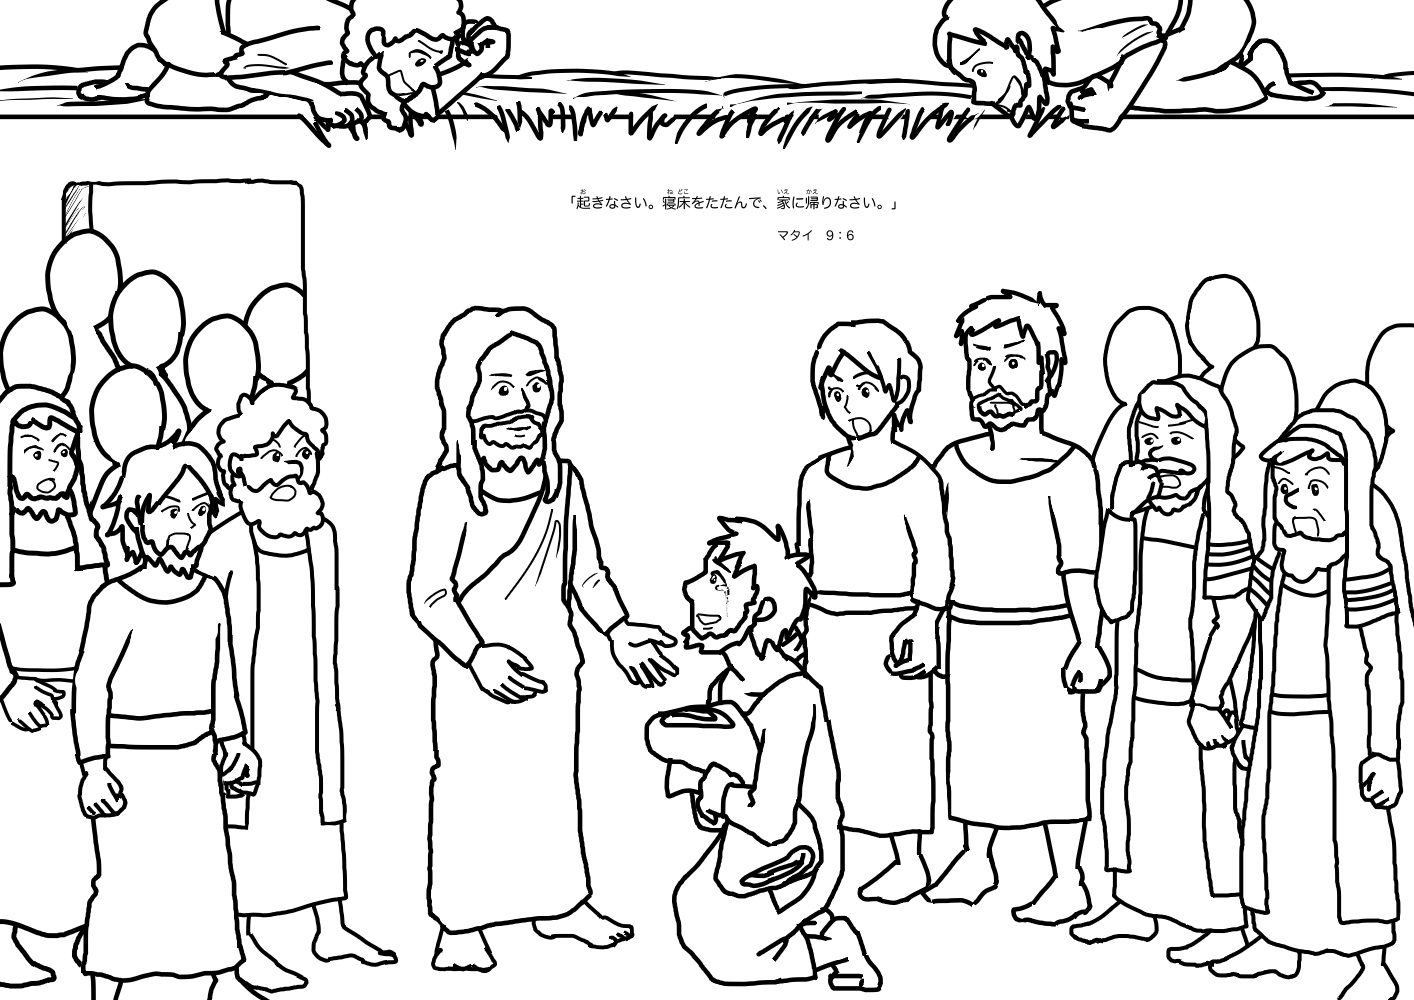 jesus heals the lame man coloring page - jesus heals paralyzed man coloring page coloring pages